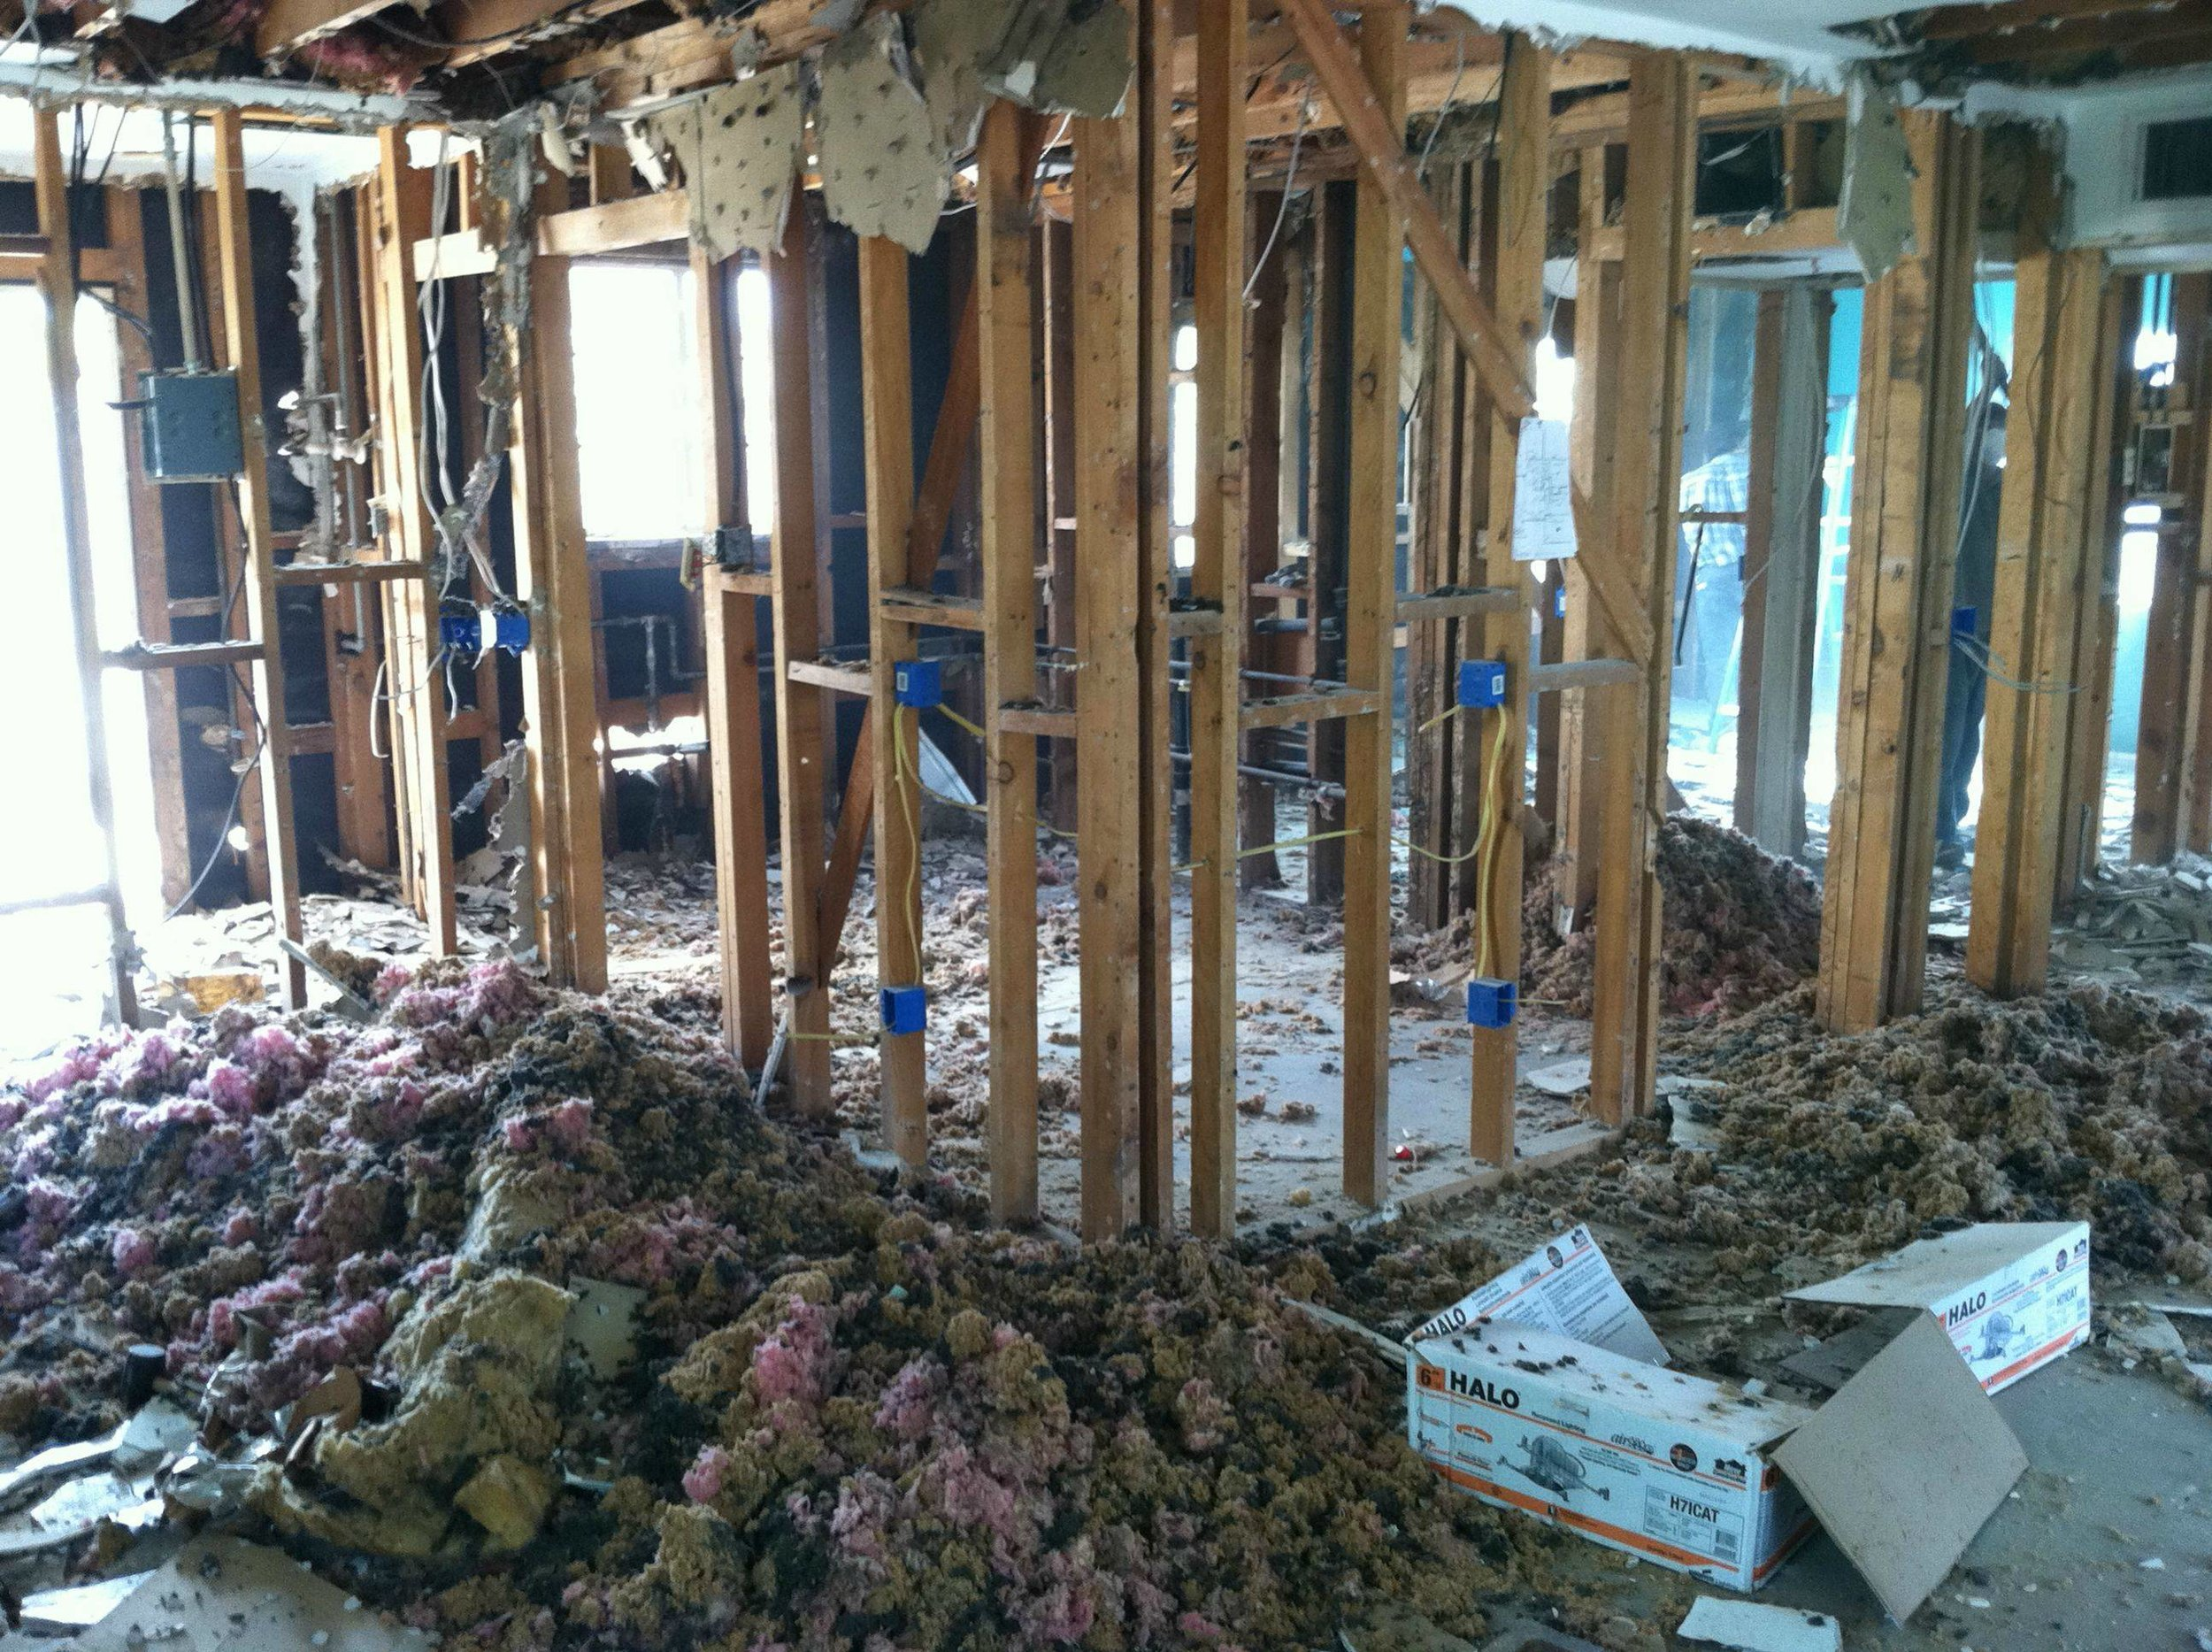 remodeling a house and tearing it down to the studs and foundation.